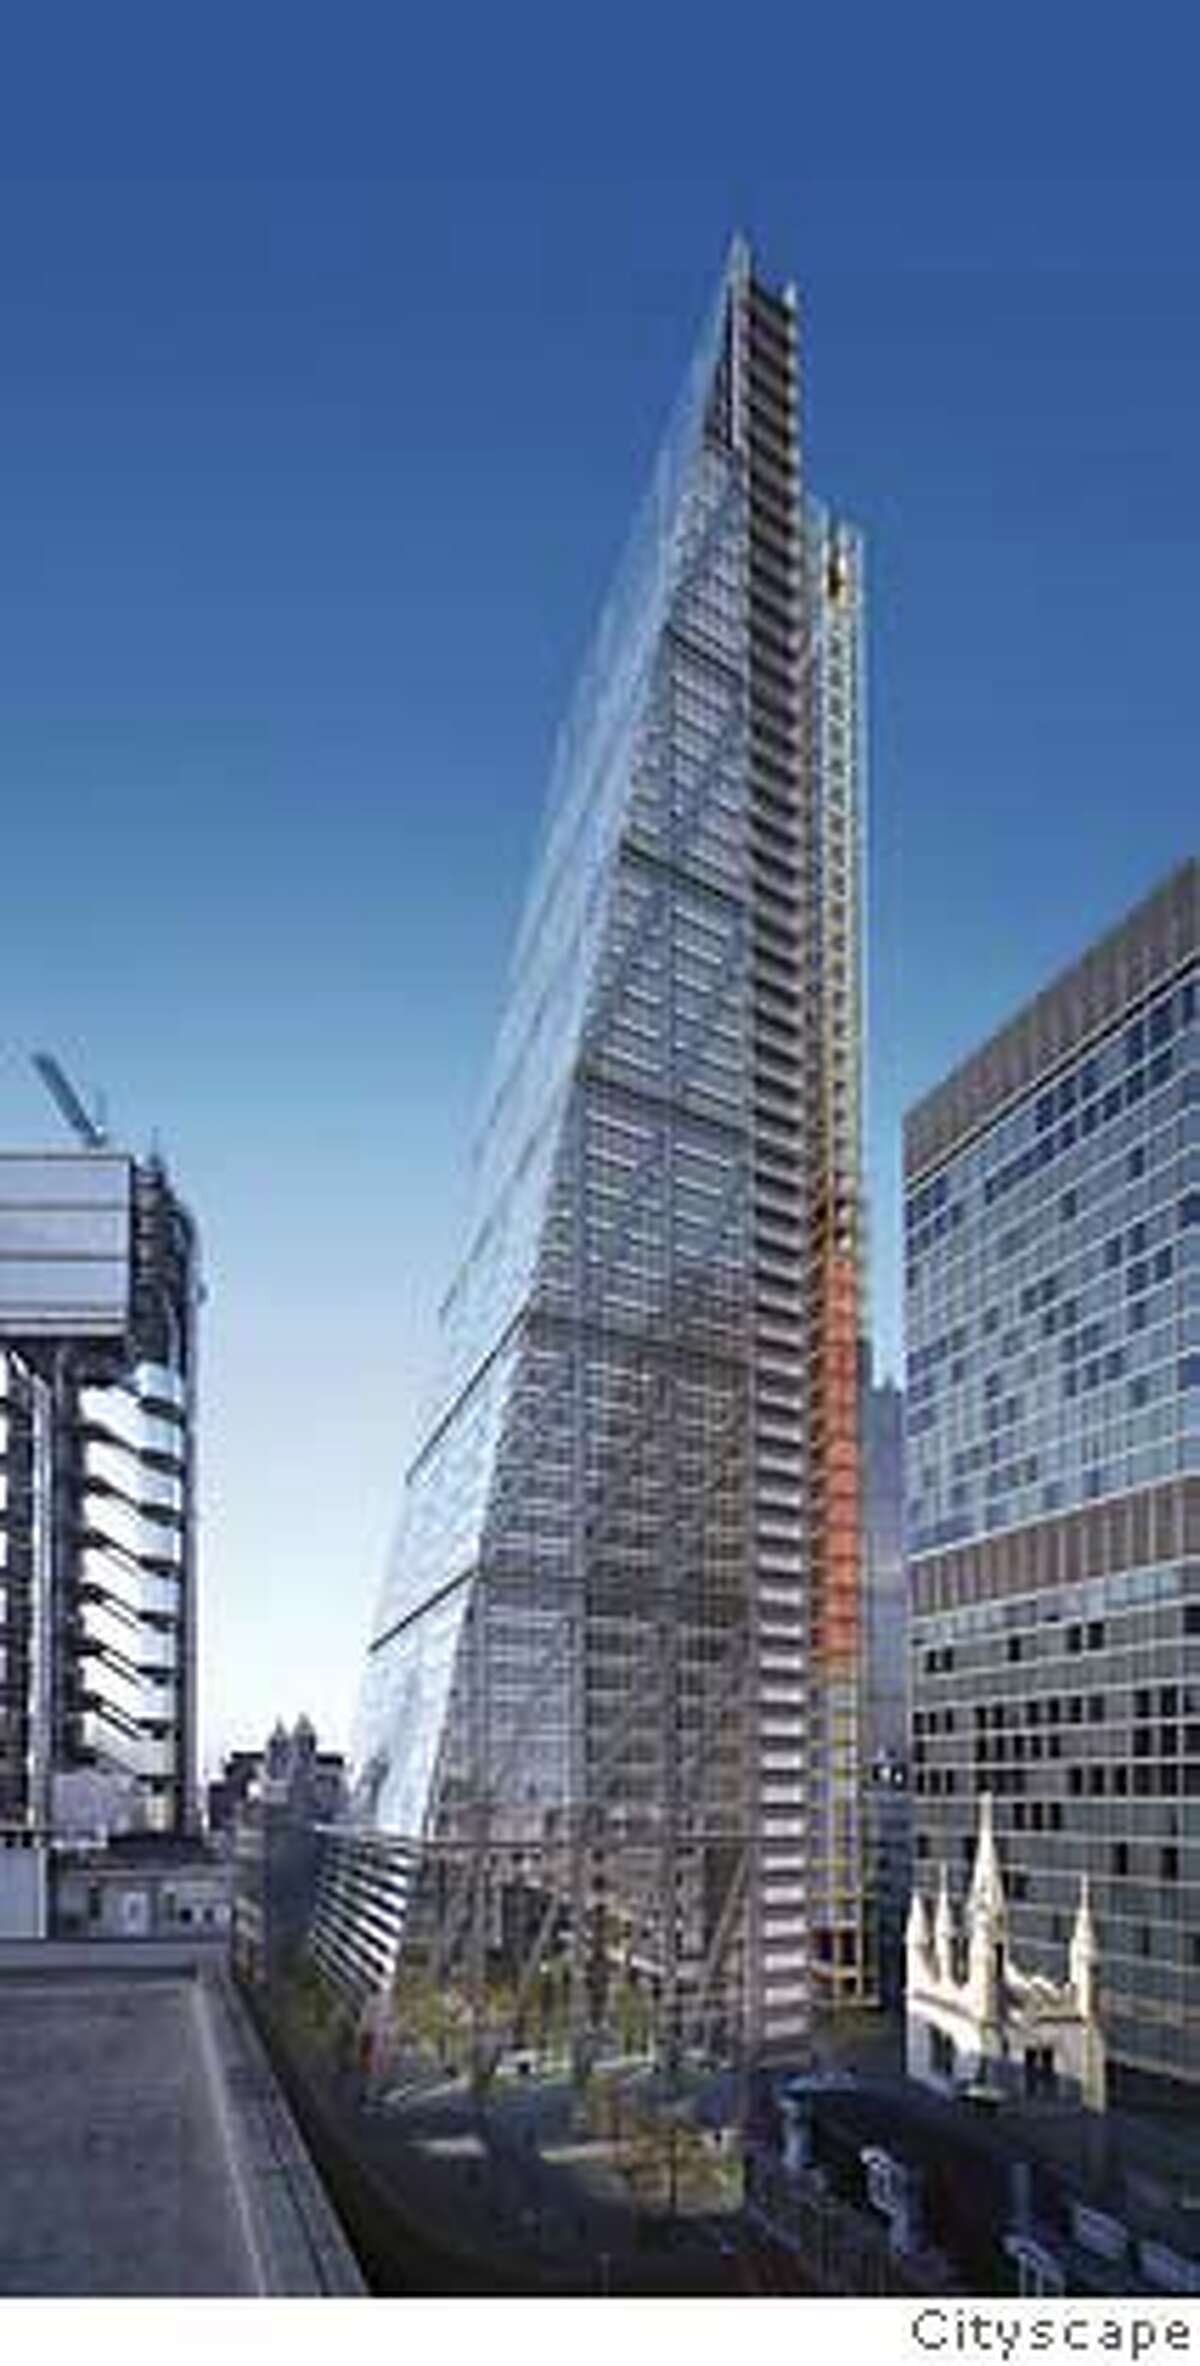 �The Leadenhall Building, London, UK Architect: Richard Rogers Partnership. Artist credit: Cityscape place30xx